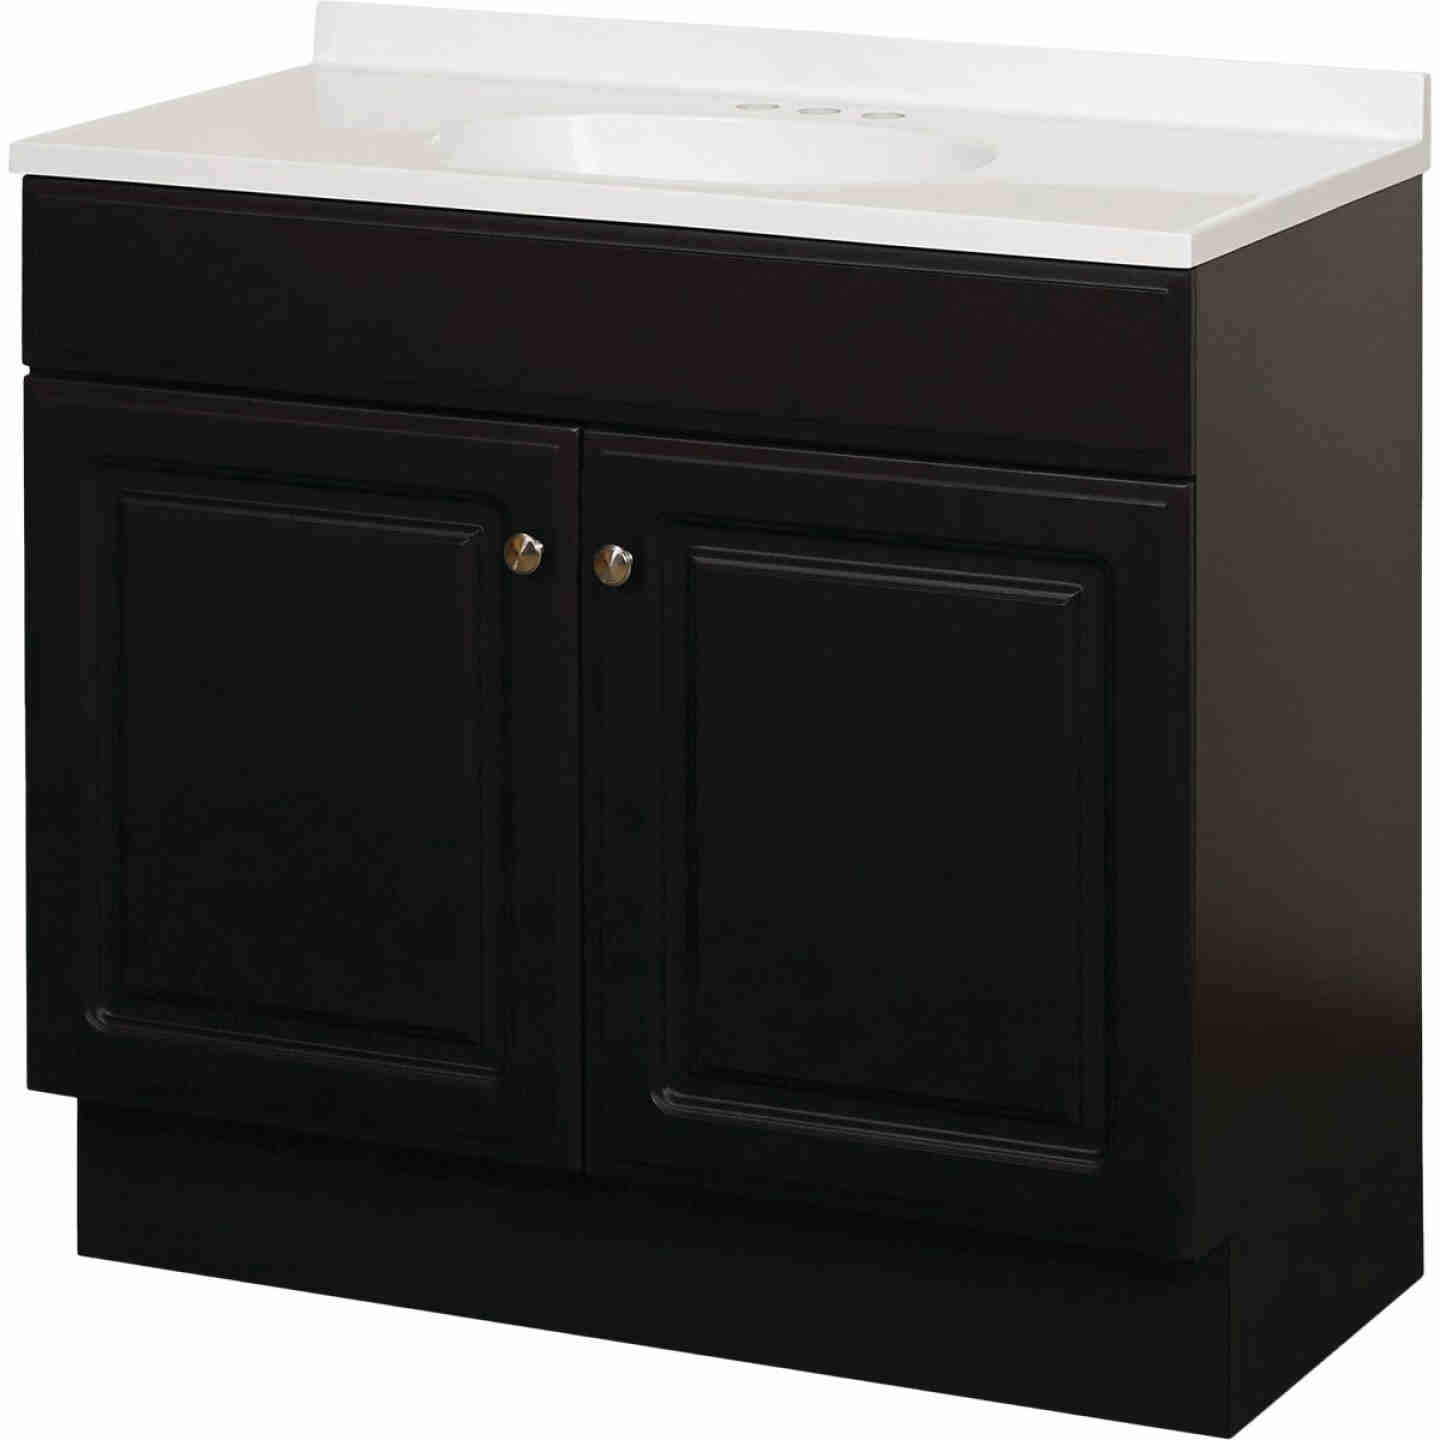 Zenith Zenna Home Espresso 36 In. W x 35 In. H x 18 In. D Vanity with White Cultured Marble Top Image 1